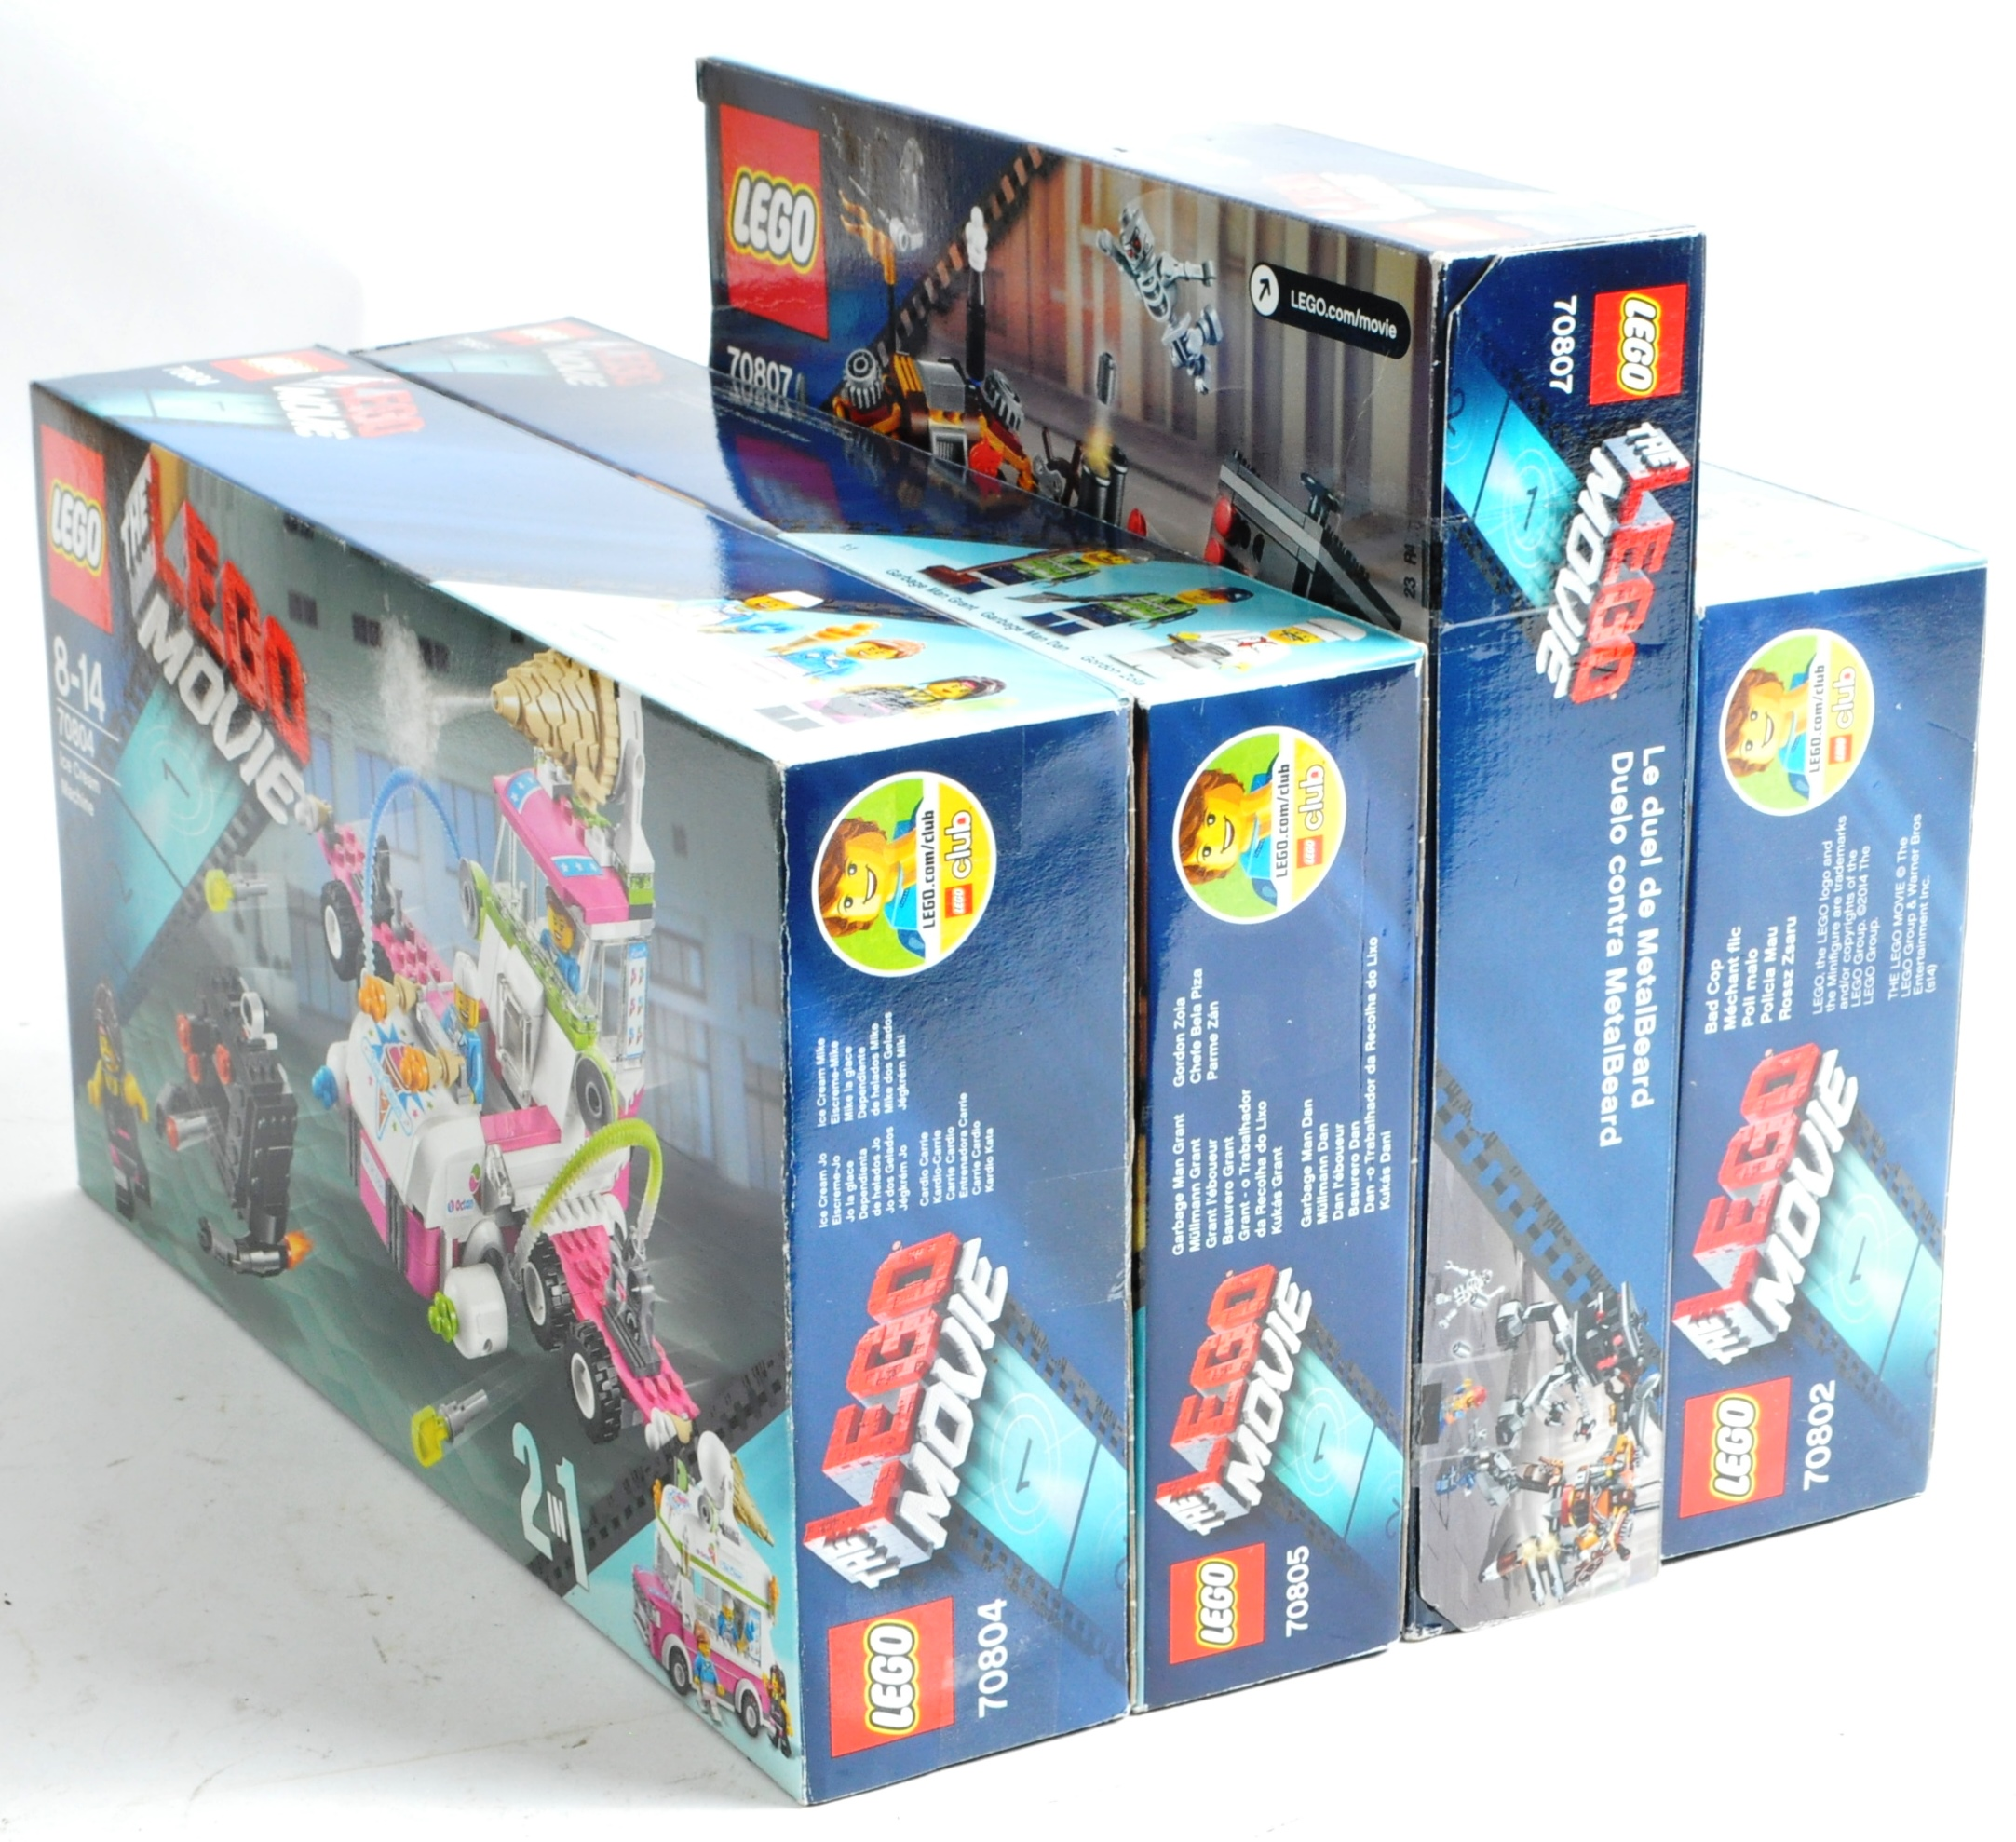 LEGO SETS - THE LEGO MOVIE - COLLECTION OF X7 LEGO MOVIE SETS - Image 16 of 17